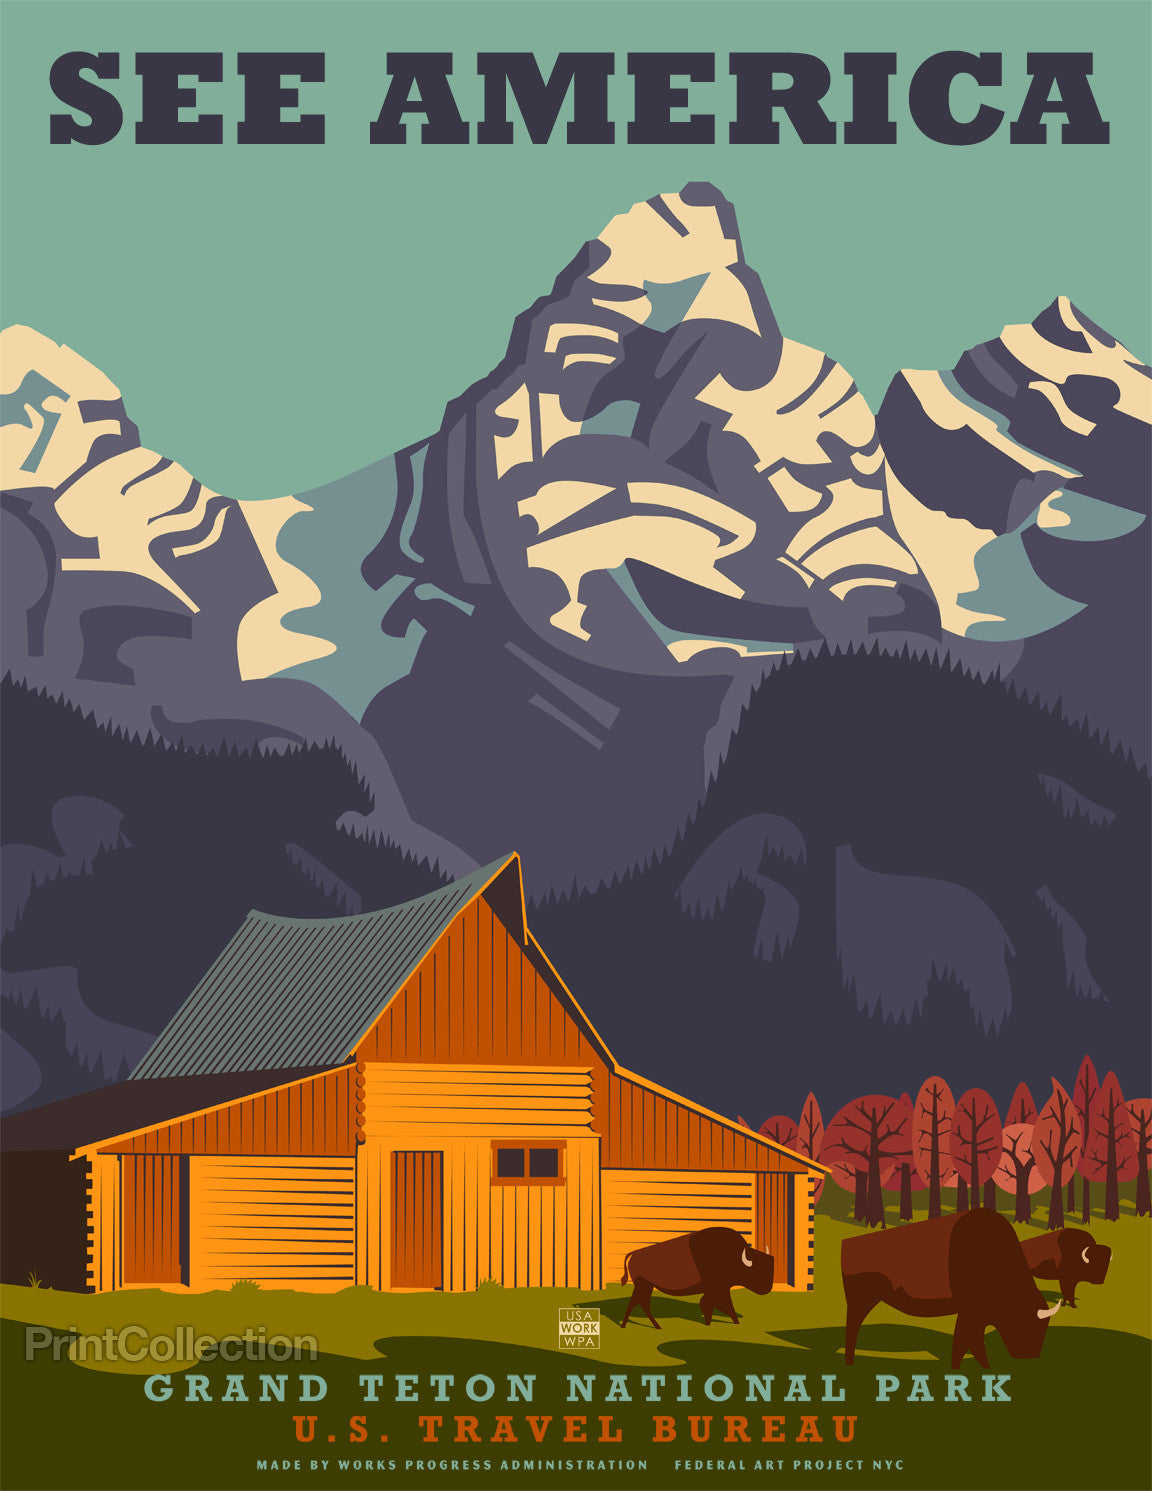 Print Collection See America Grand Teton National Park